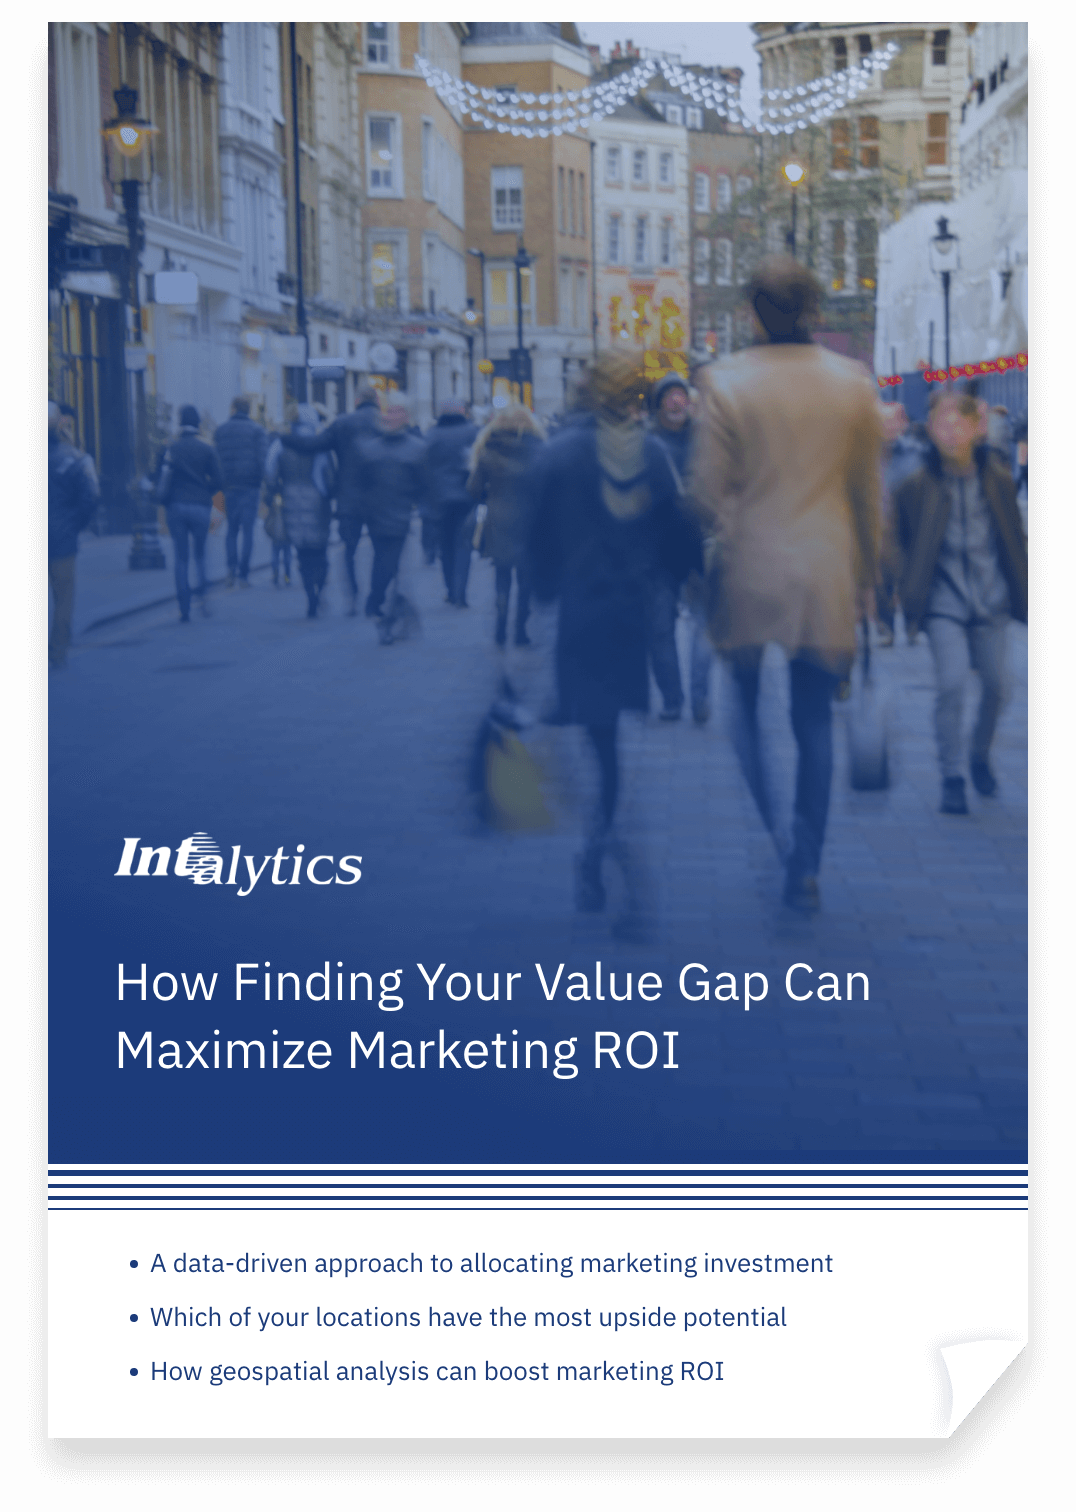 Thumbnail of resource paper titled: How Finding Your Value Gap Can Maximize Marketing ROI.